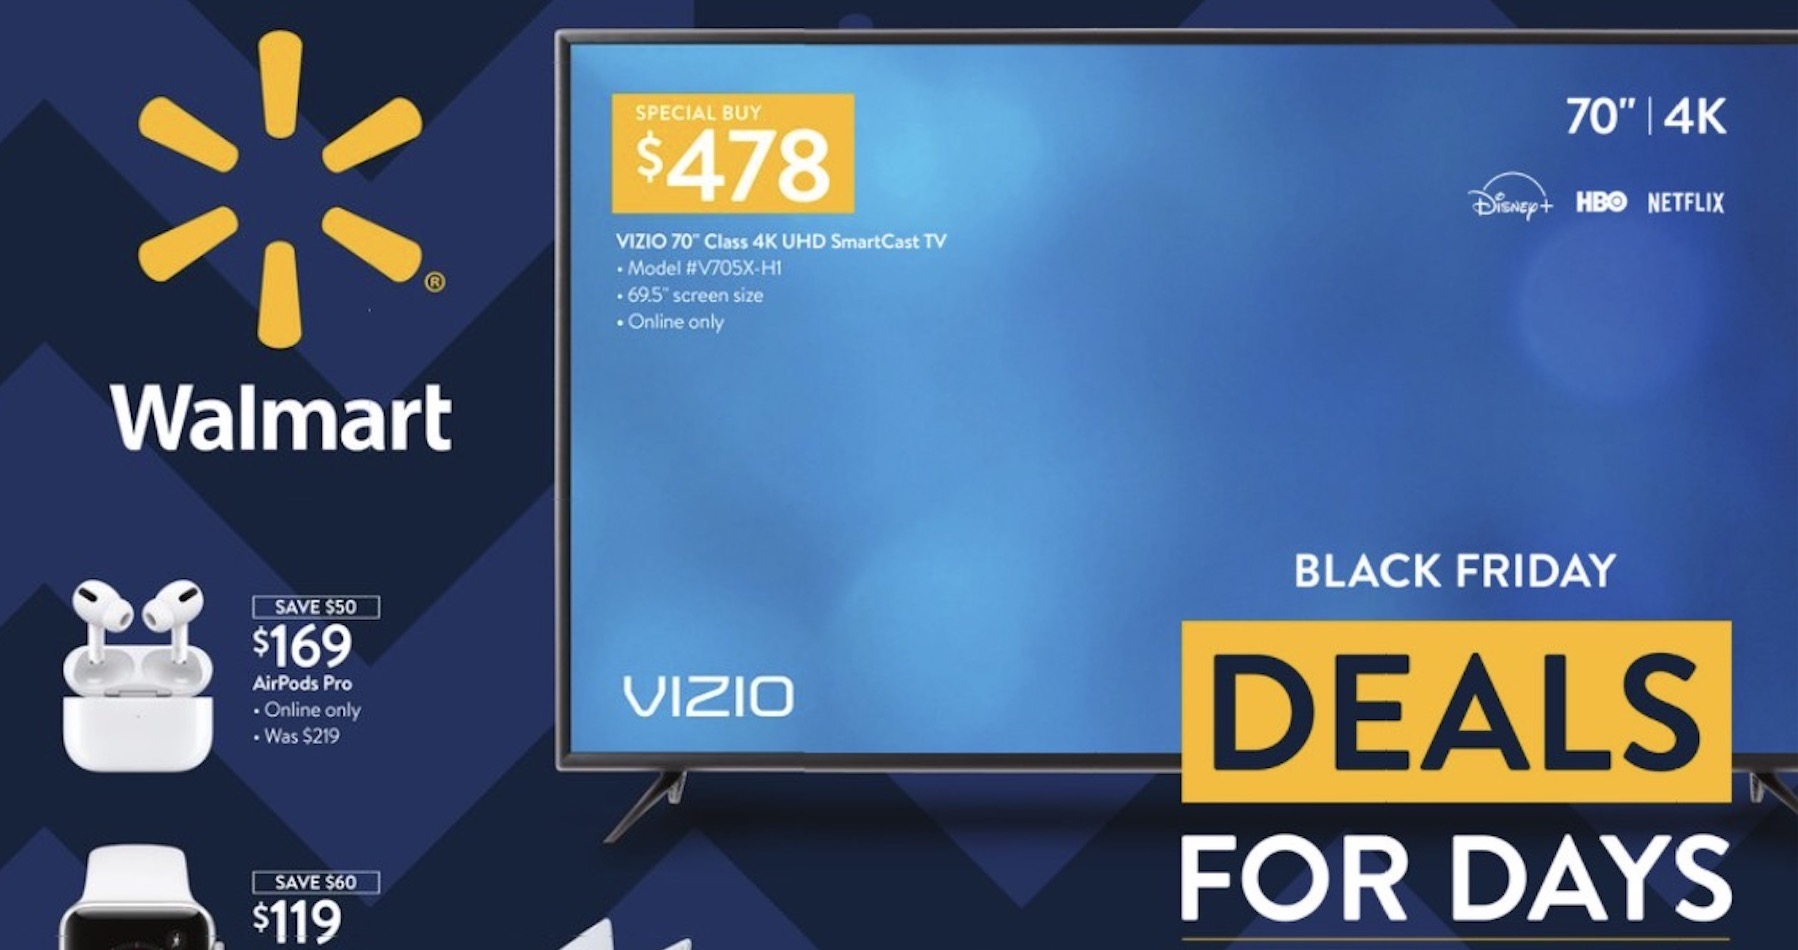 Walmart Black Friday: Here are the best deals you can find right